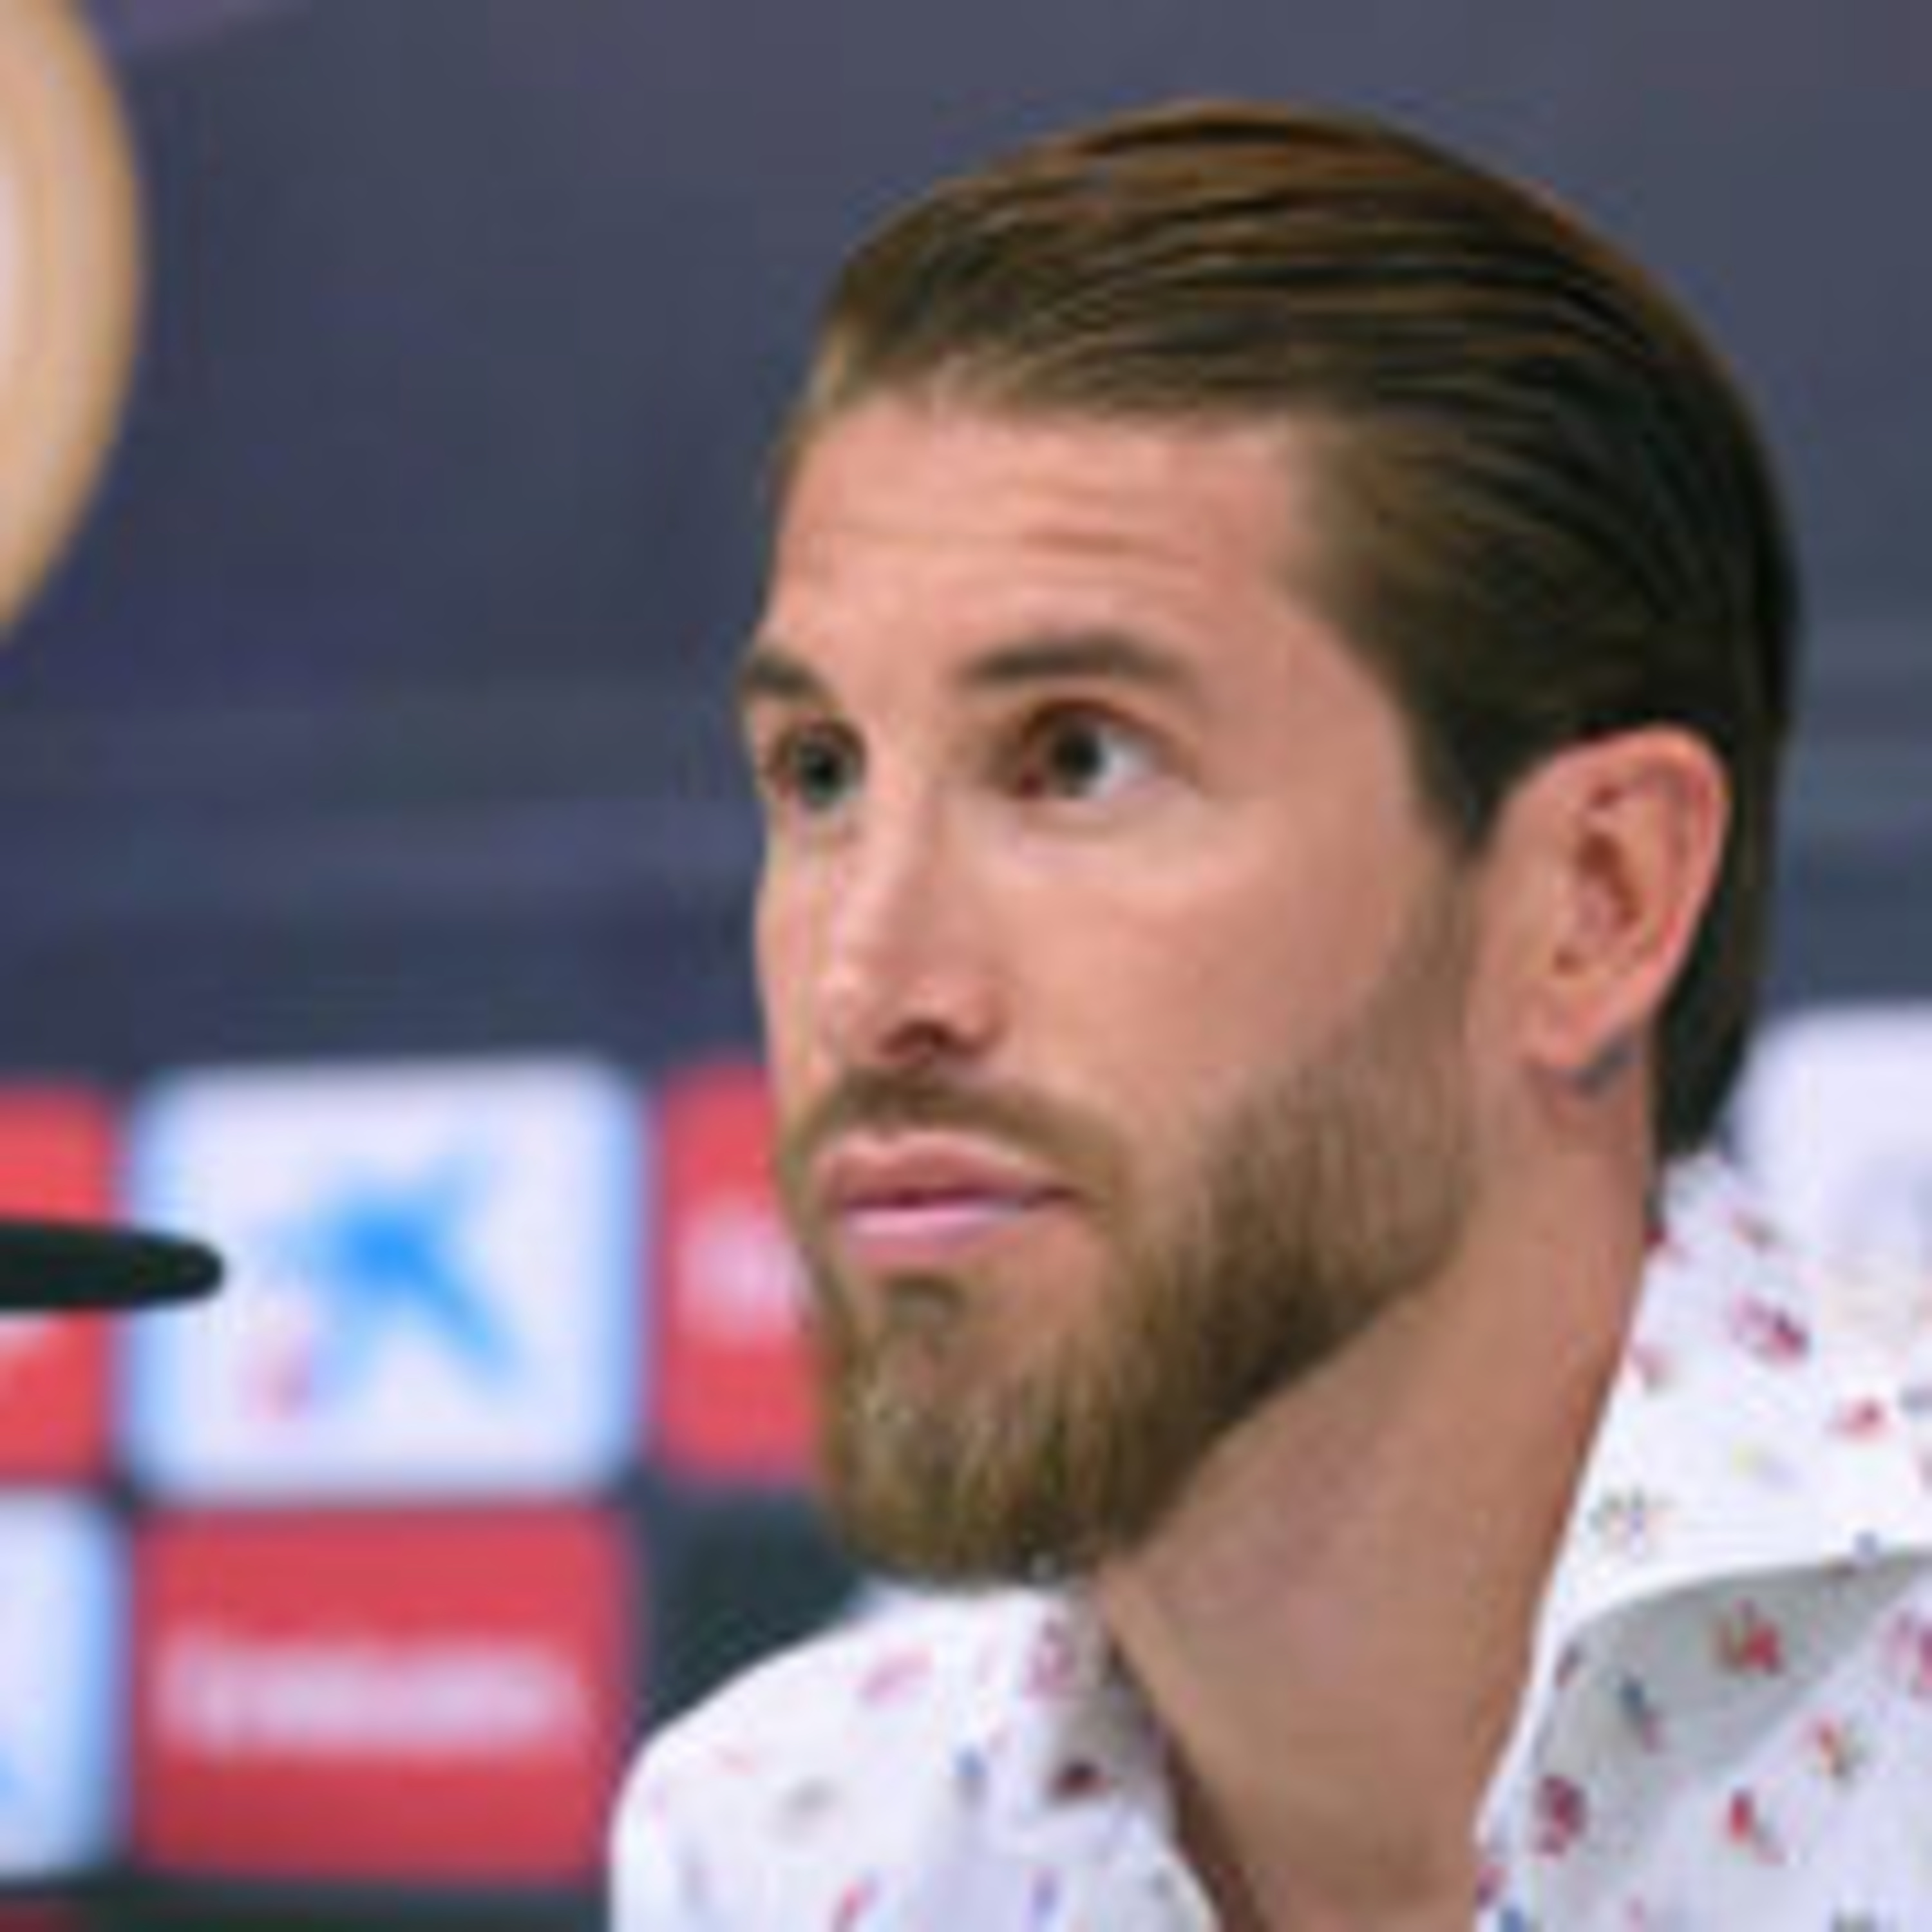 "Sergio Ramos appears before media to clarify position ""I am staying with Madrid"". Hazard expected to be unveiled on June 11"